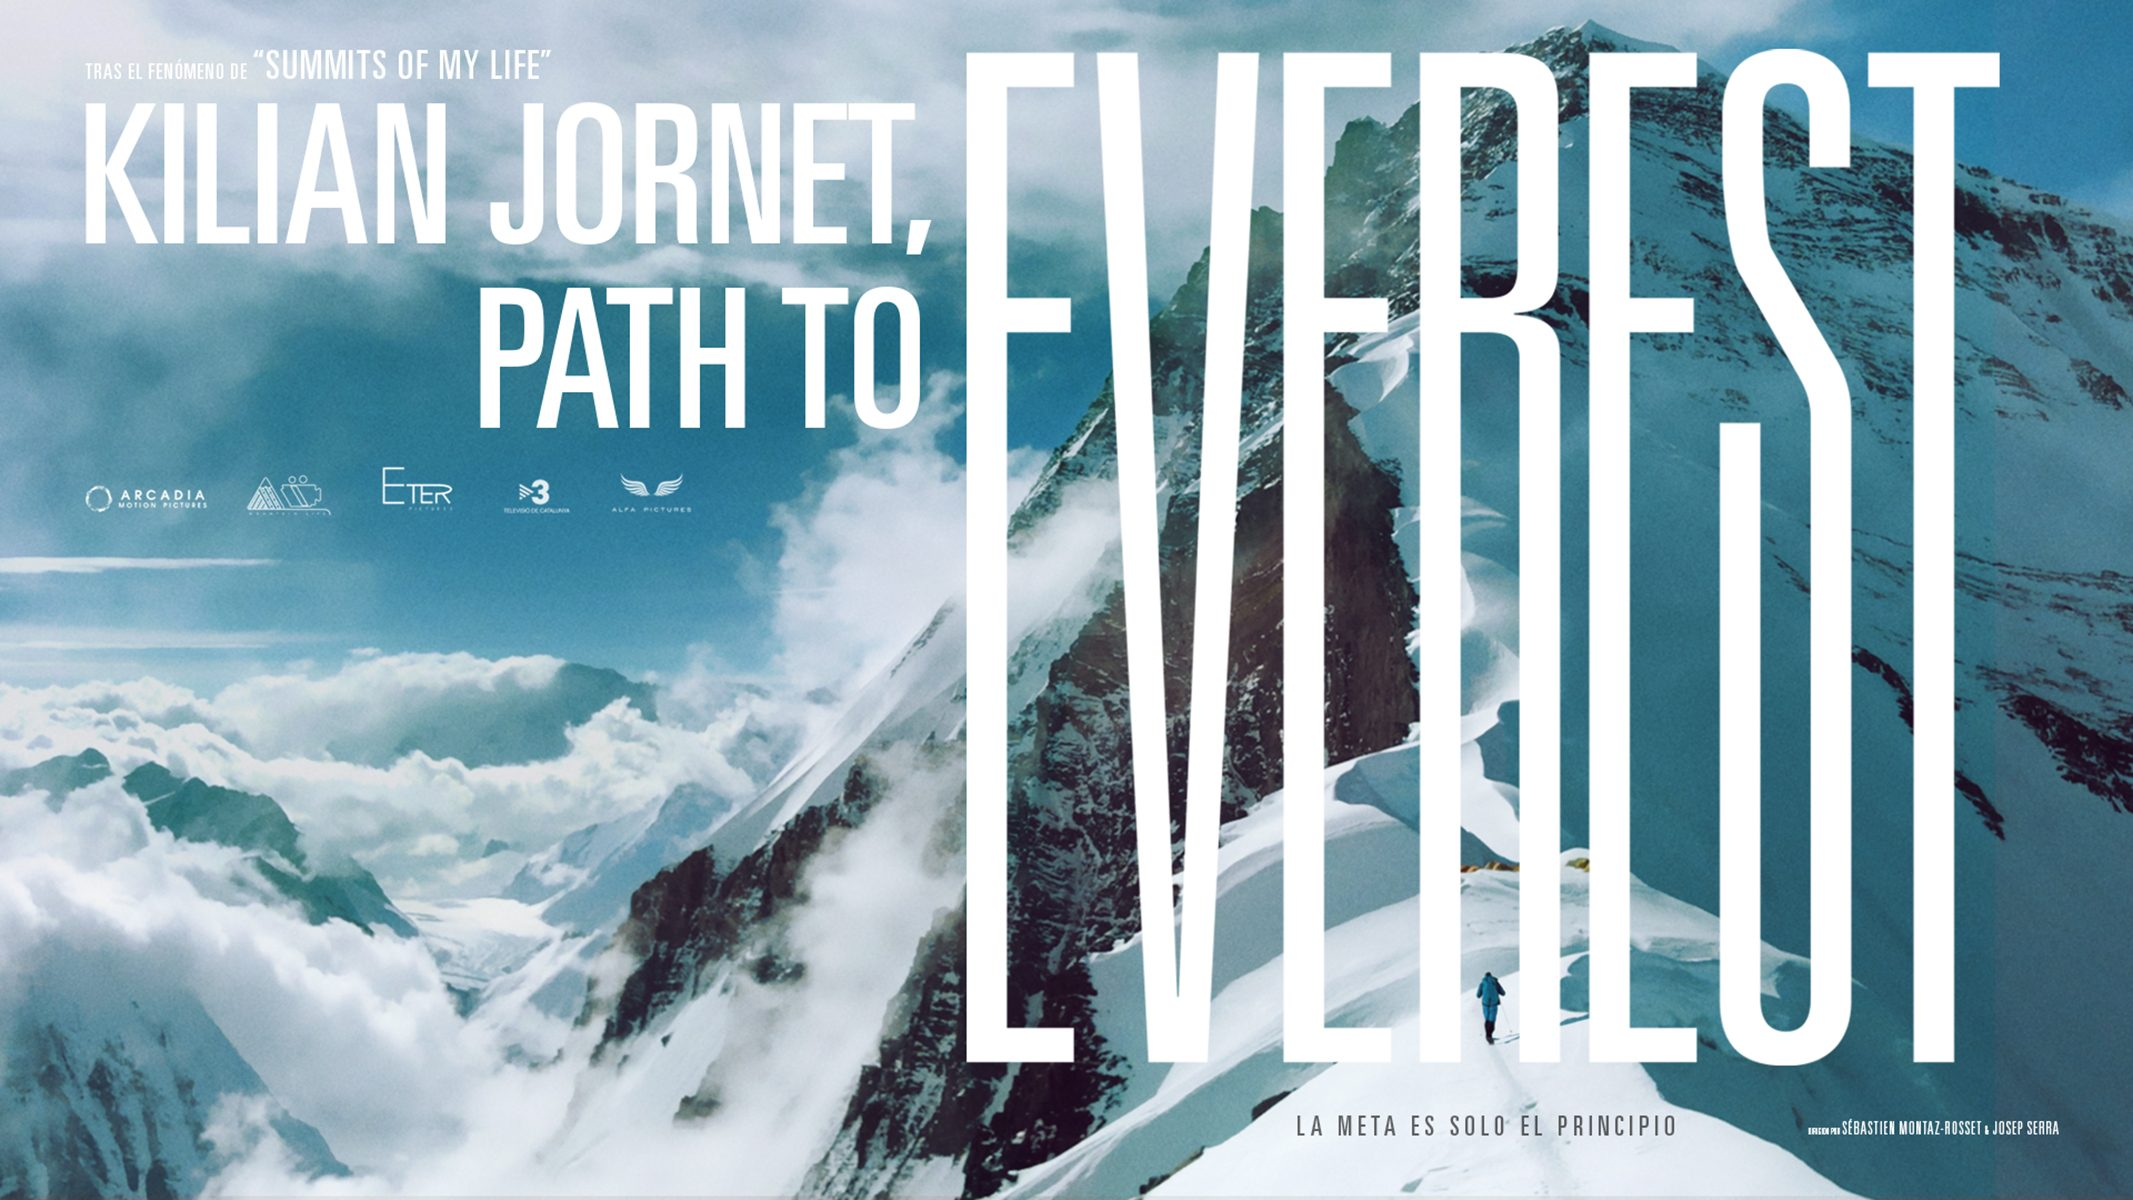 Kilian Jornet, Path to Everest | Jordi Rins